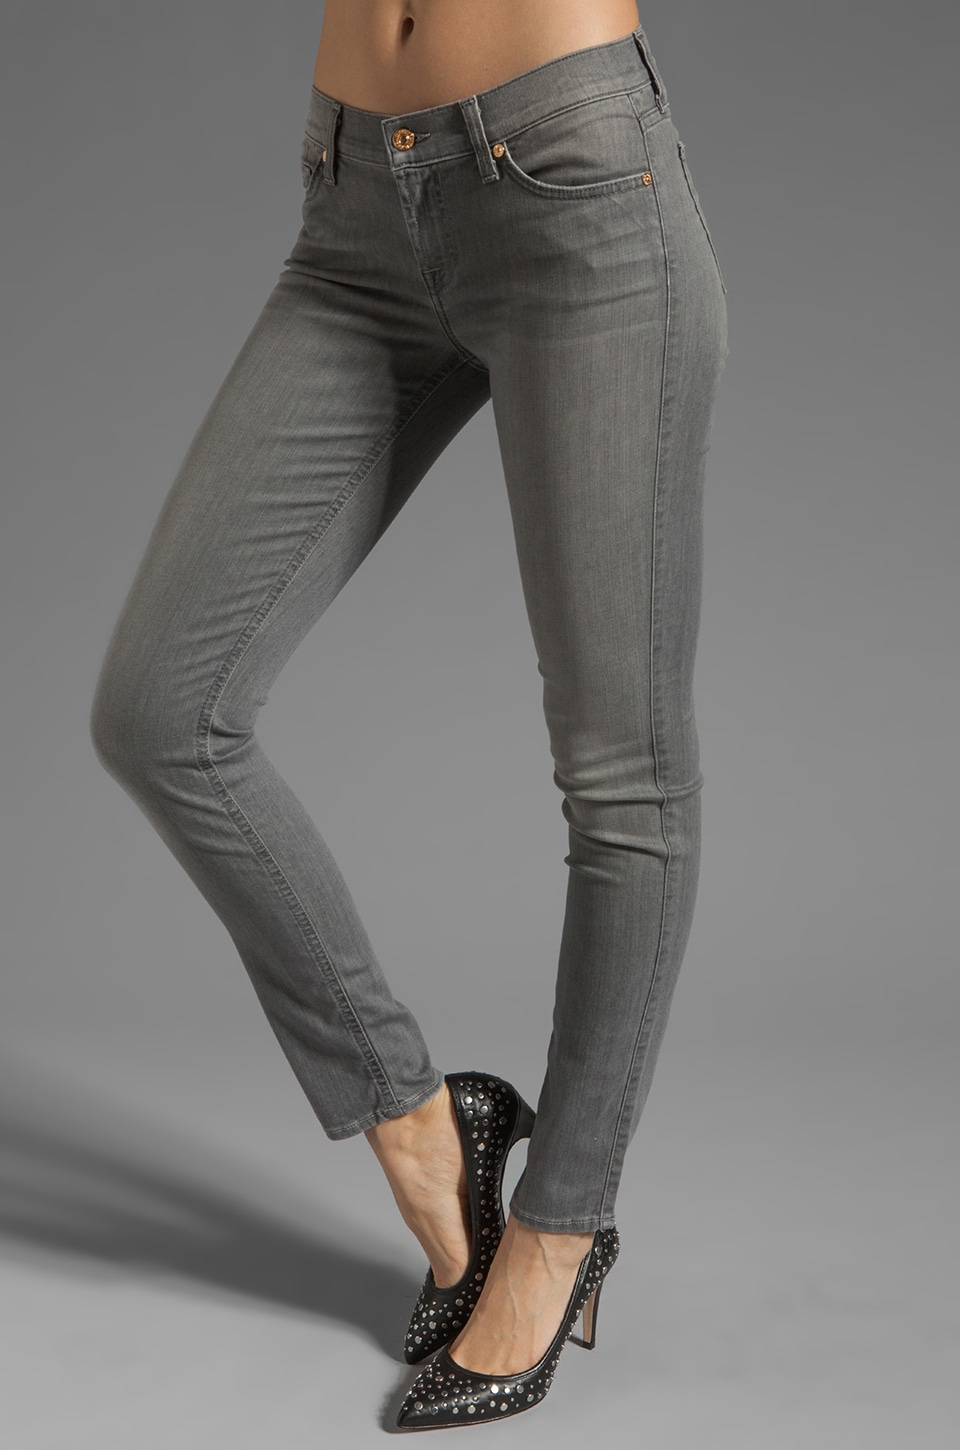 7 For All Mankind The Slim Cigarette in Silver Grey